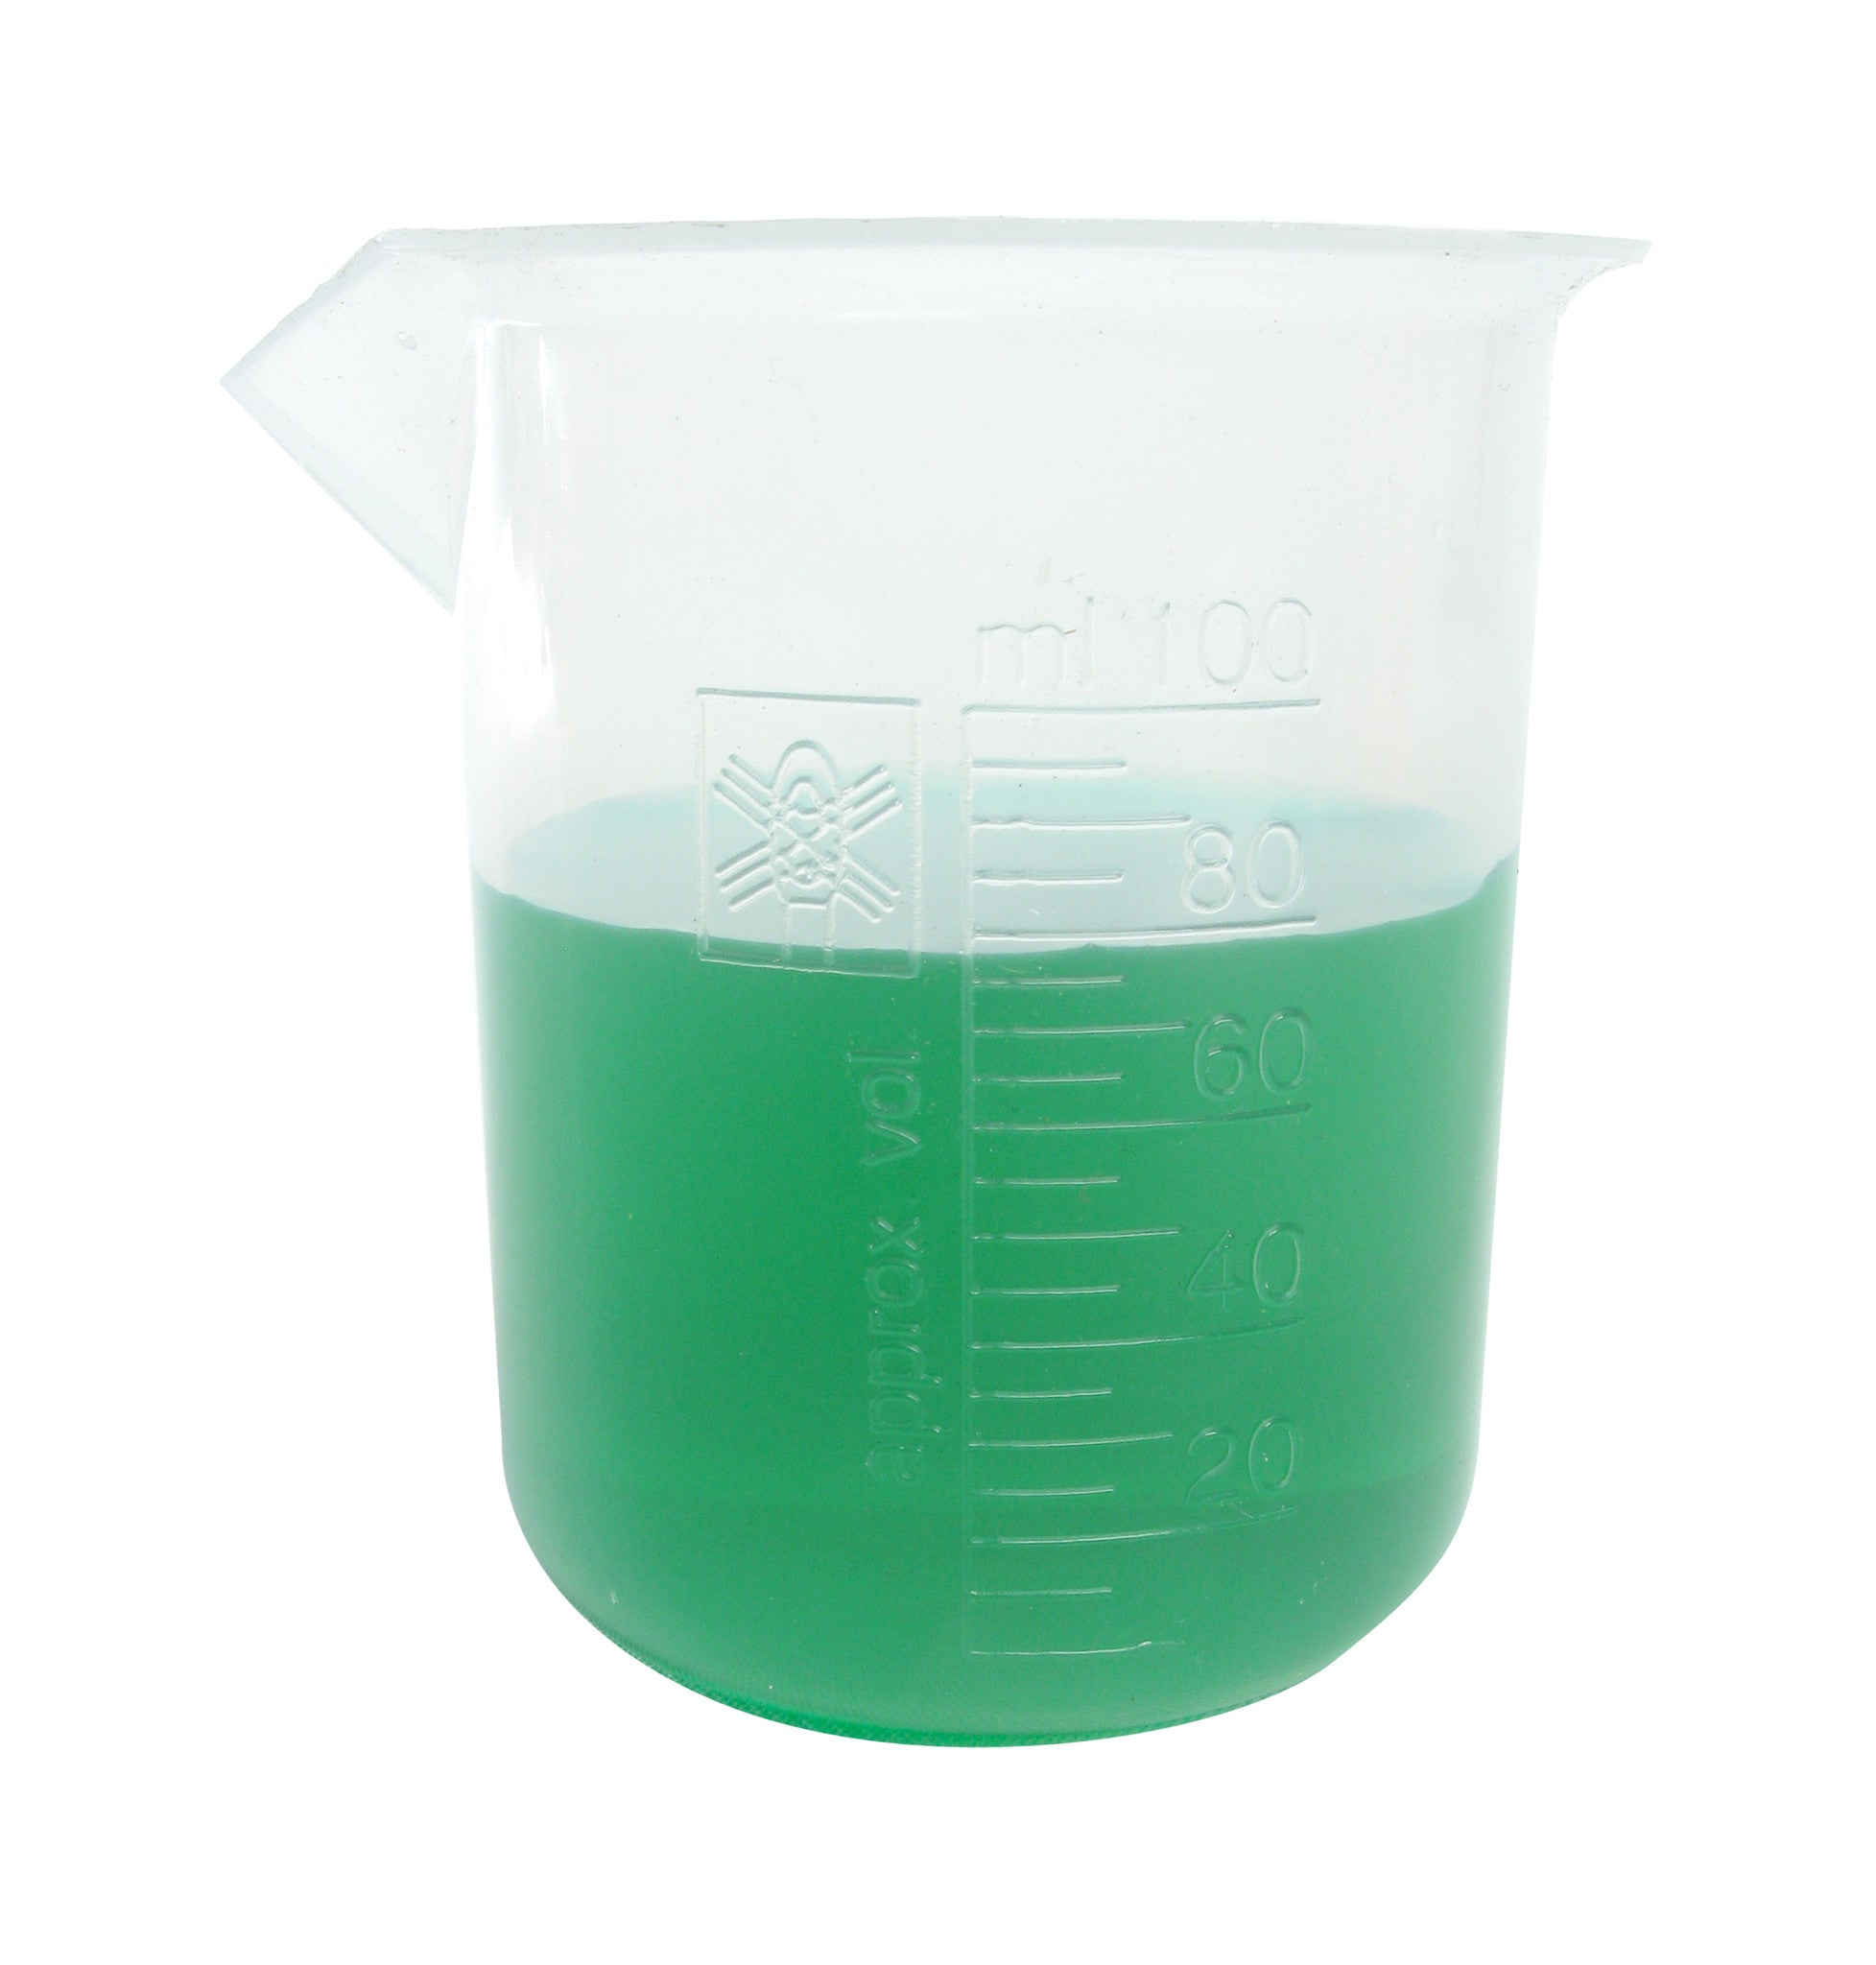 Polypropylene Graduated Beaker - 100 ml - The Science Shop